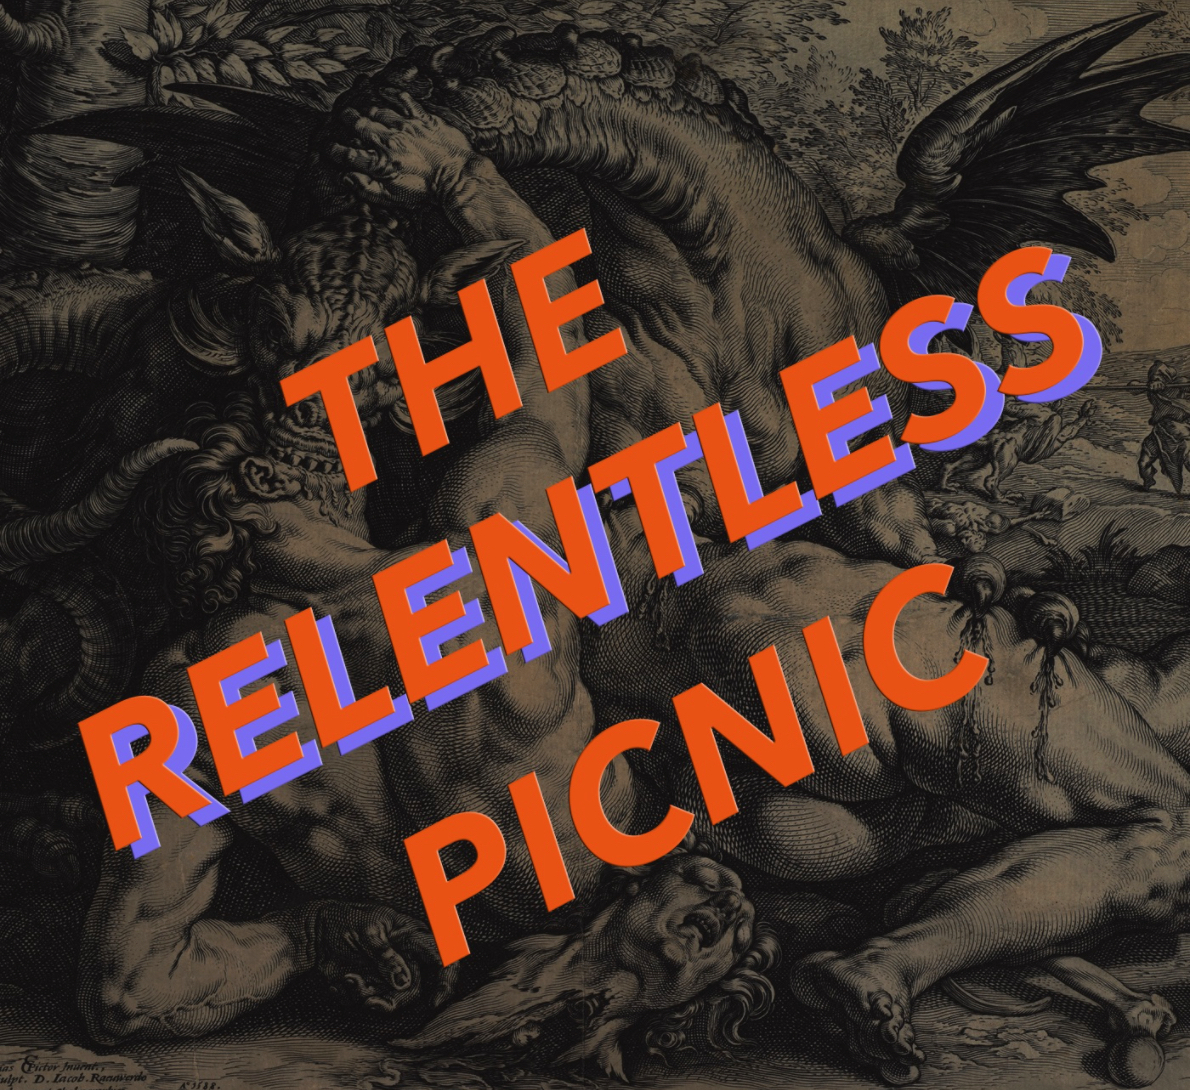 The Relentless Picnic